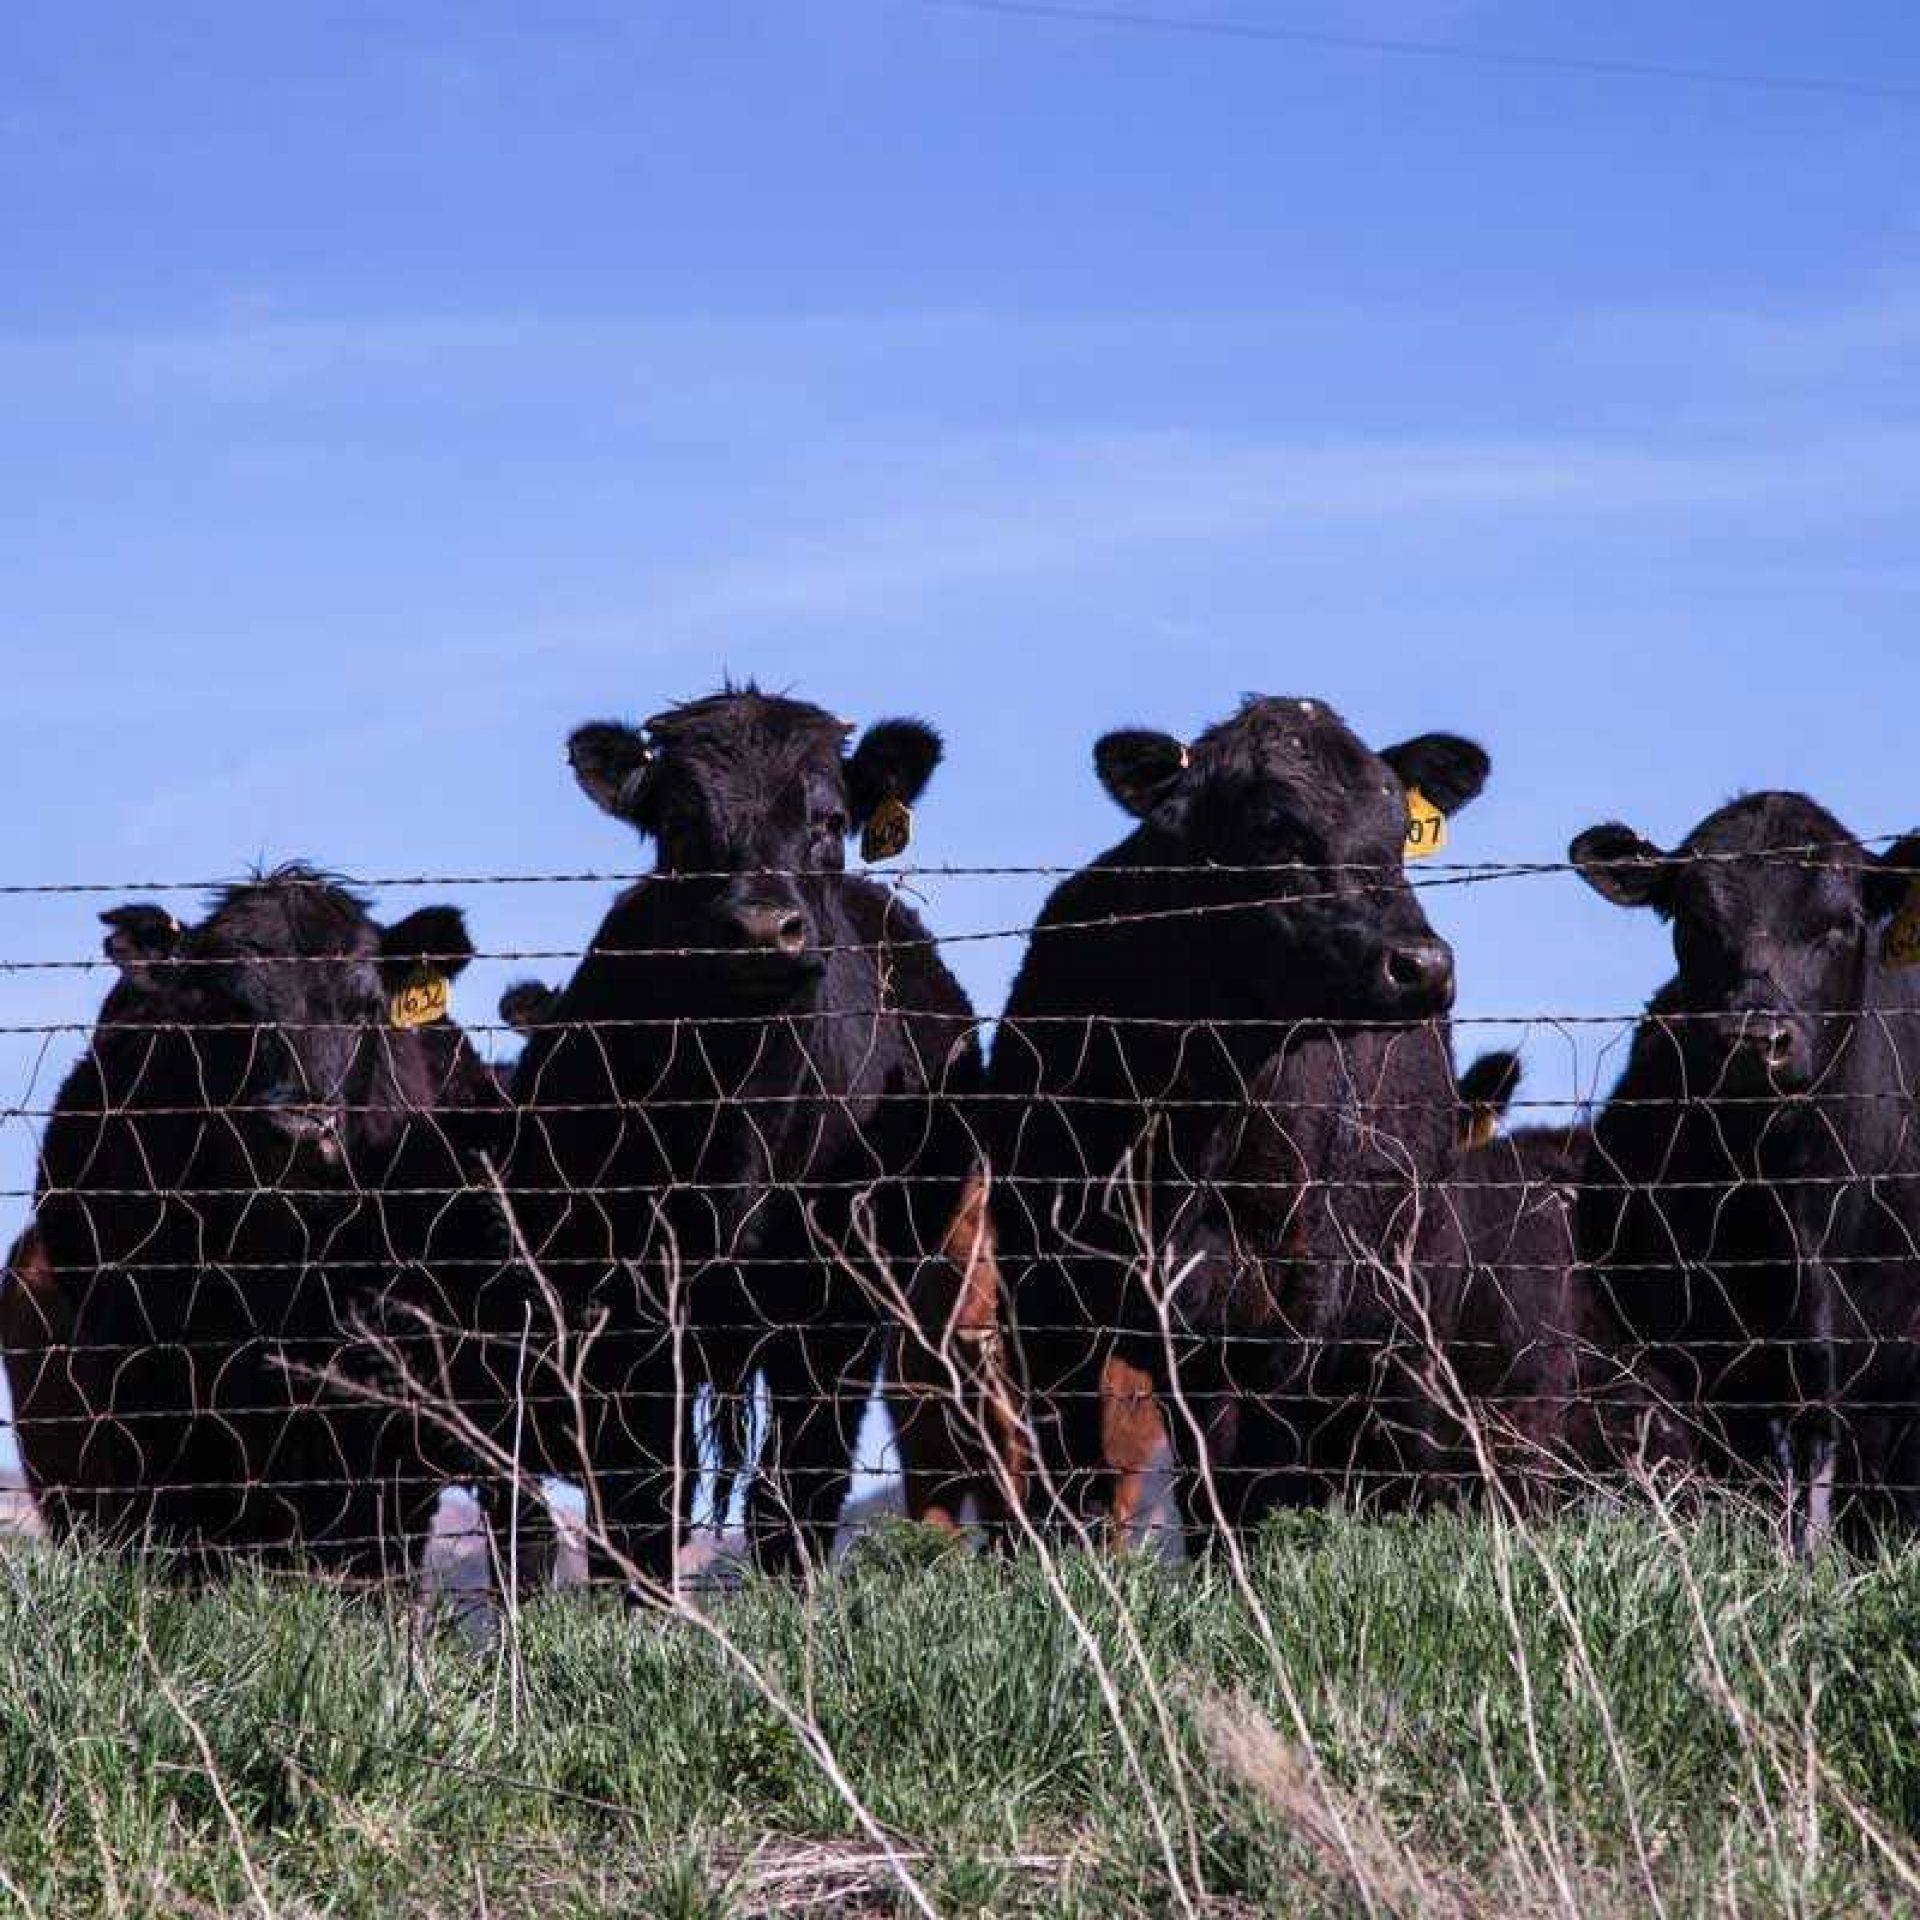 Group of black cattle